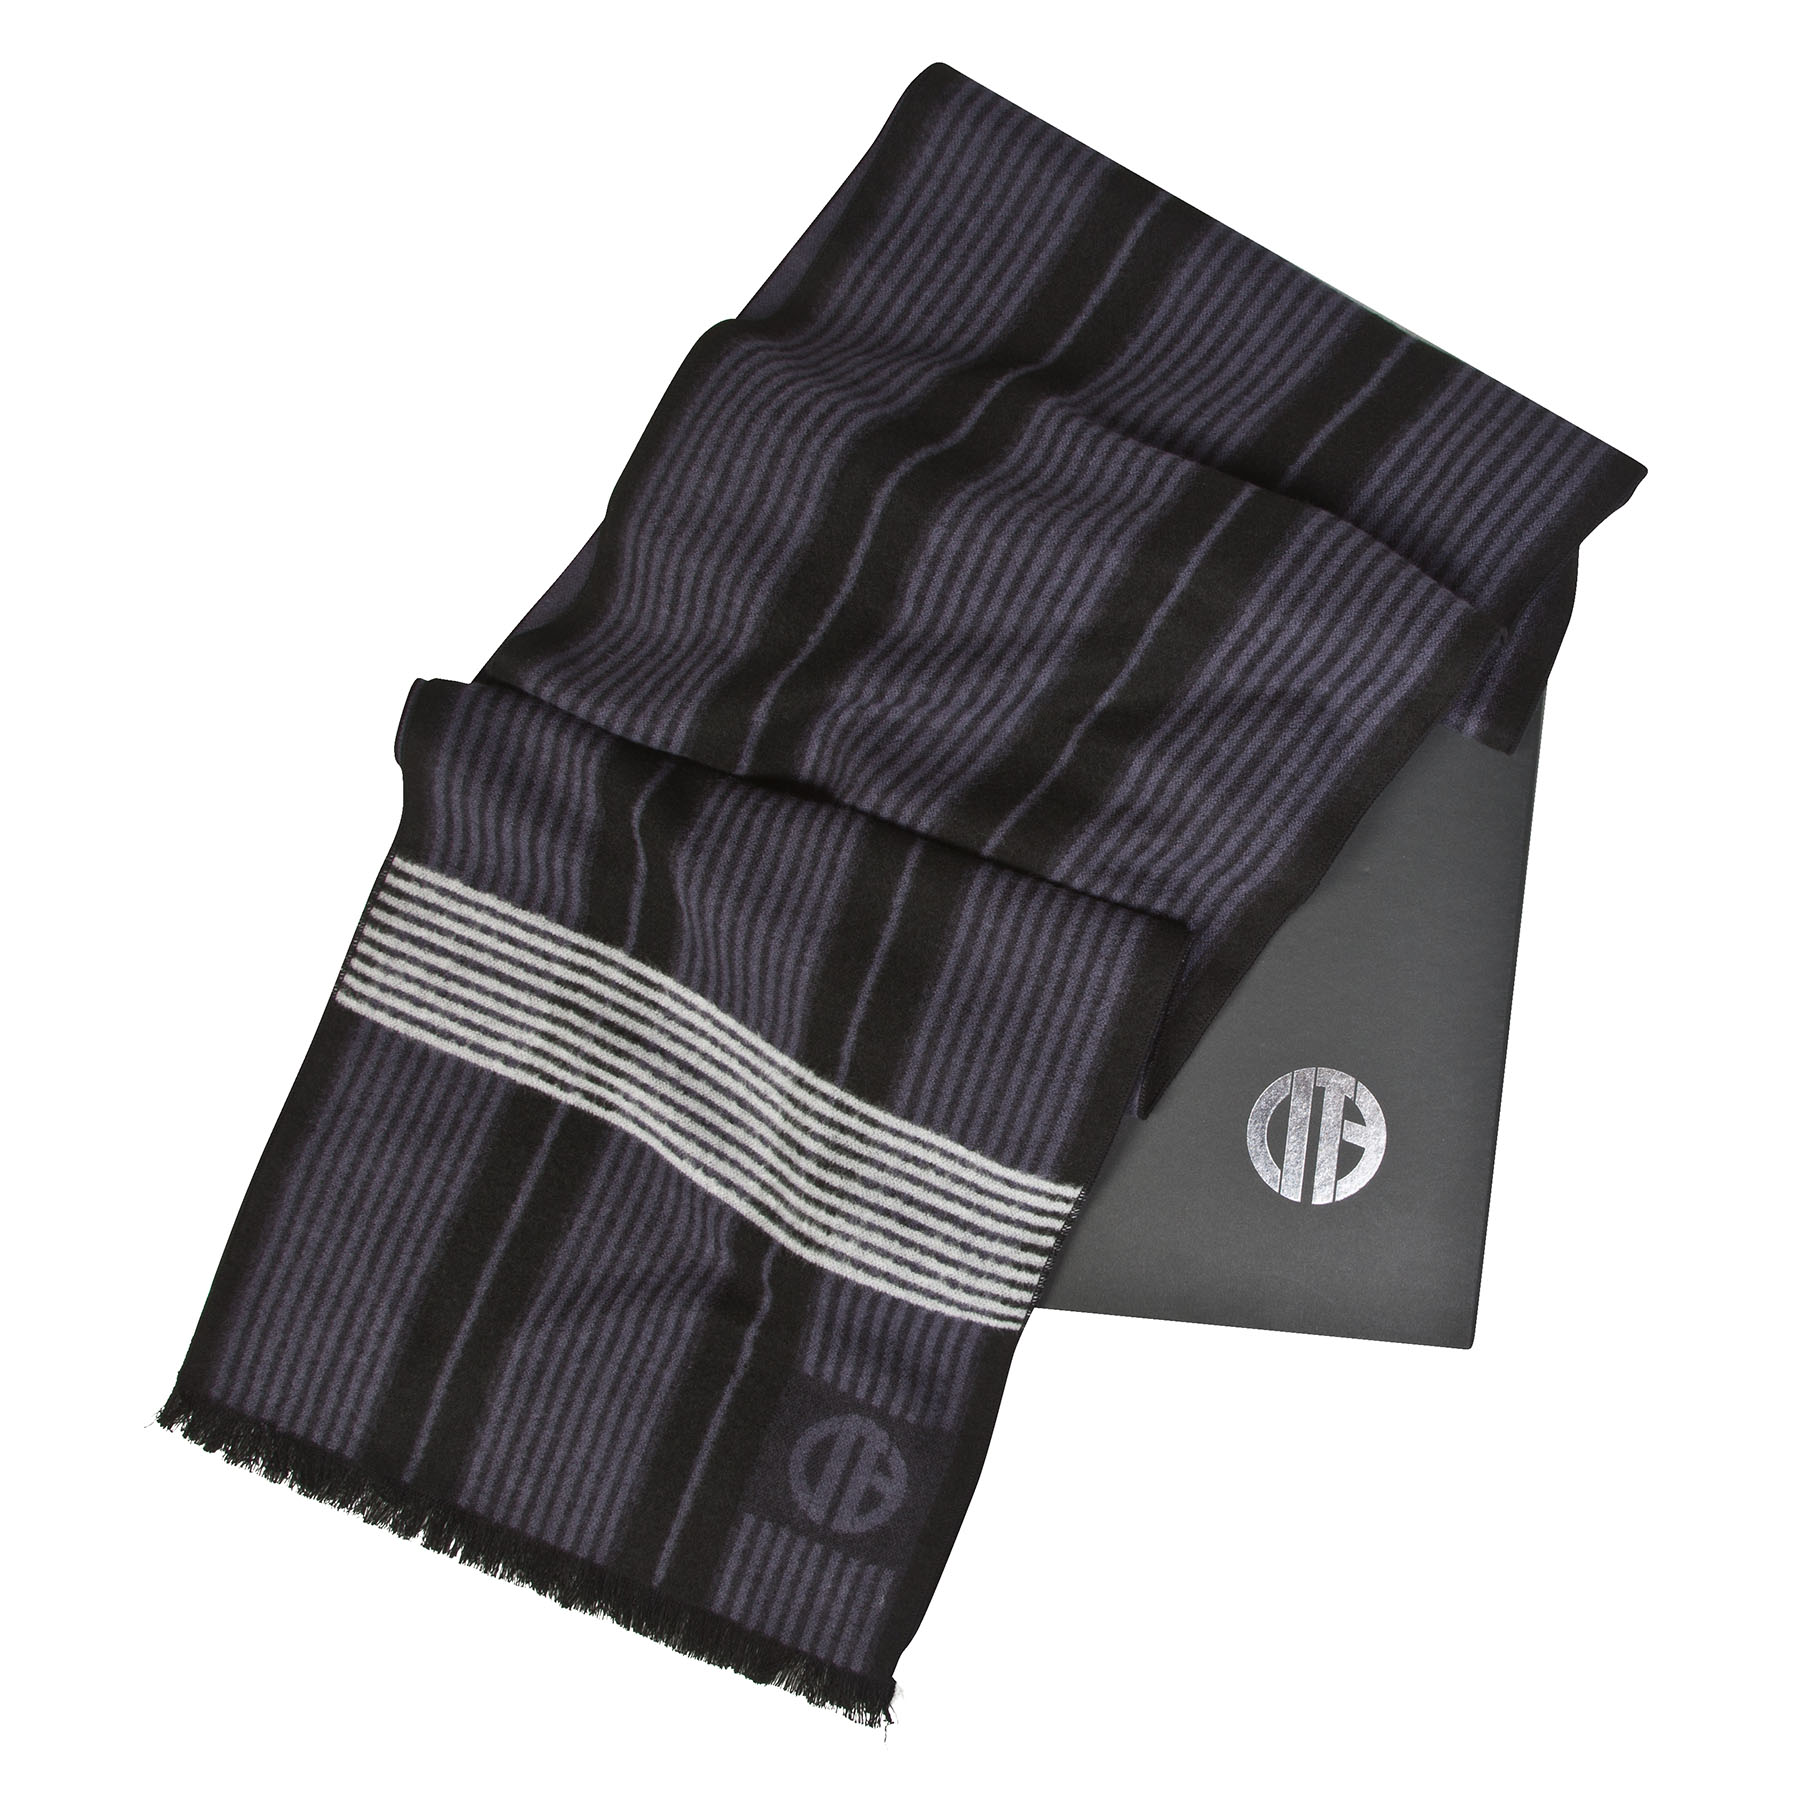 Manchester City Luxury Boxed Scarf - Black - Adult